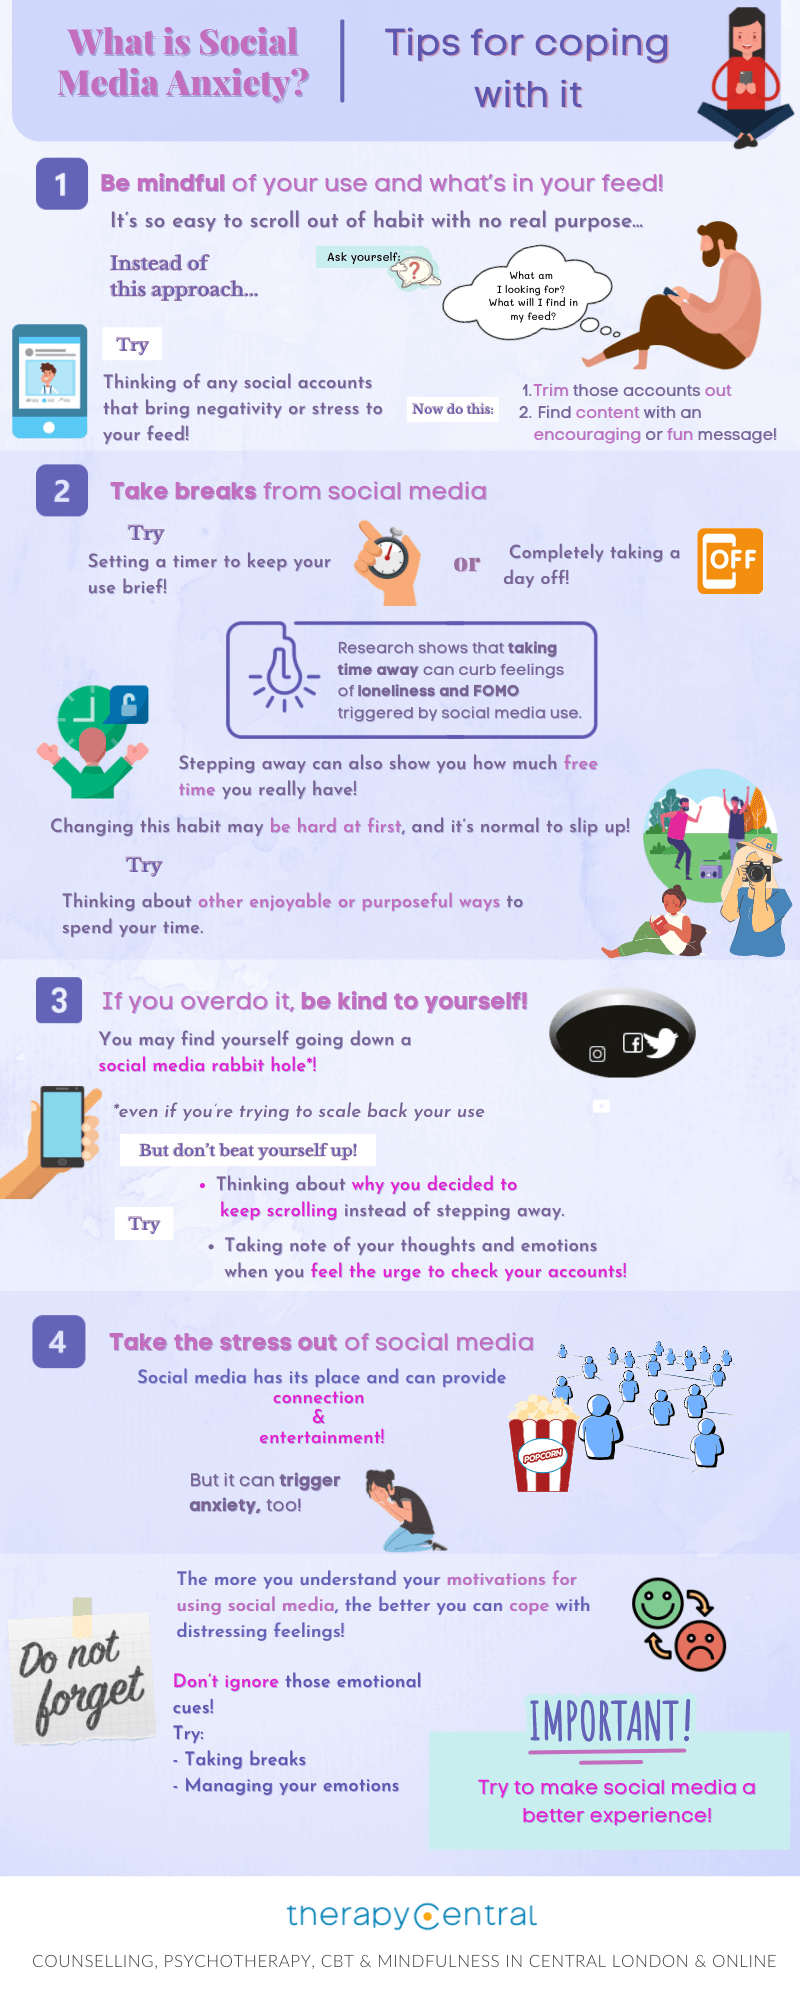 infographic what is social media Anxiety - Coping